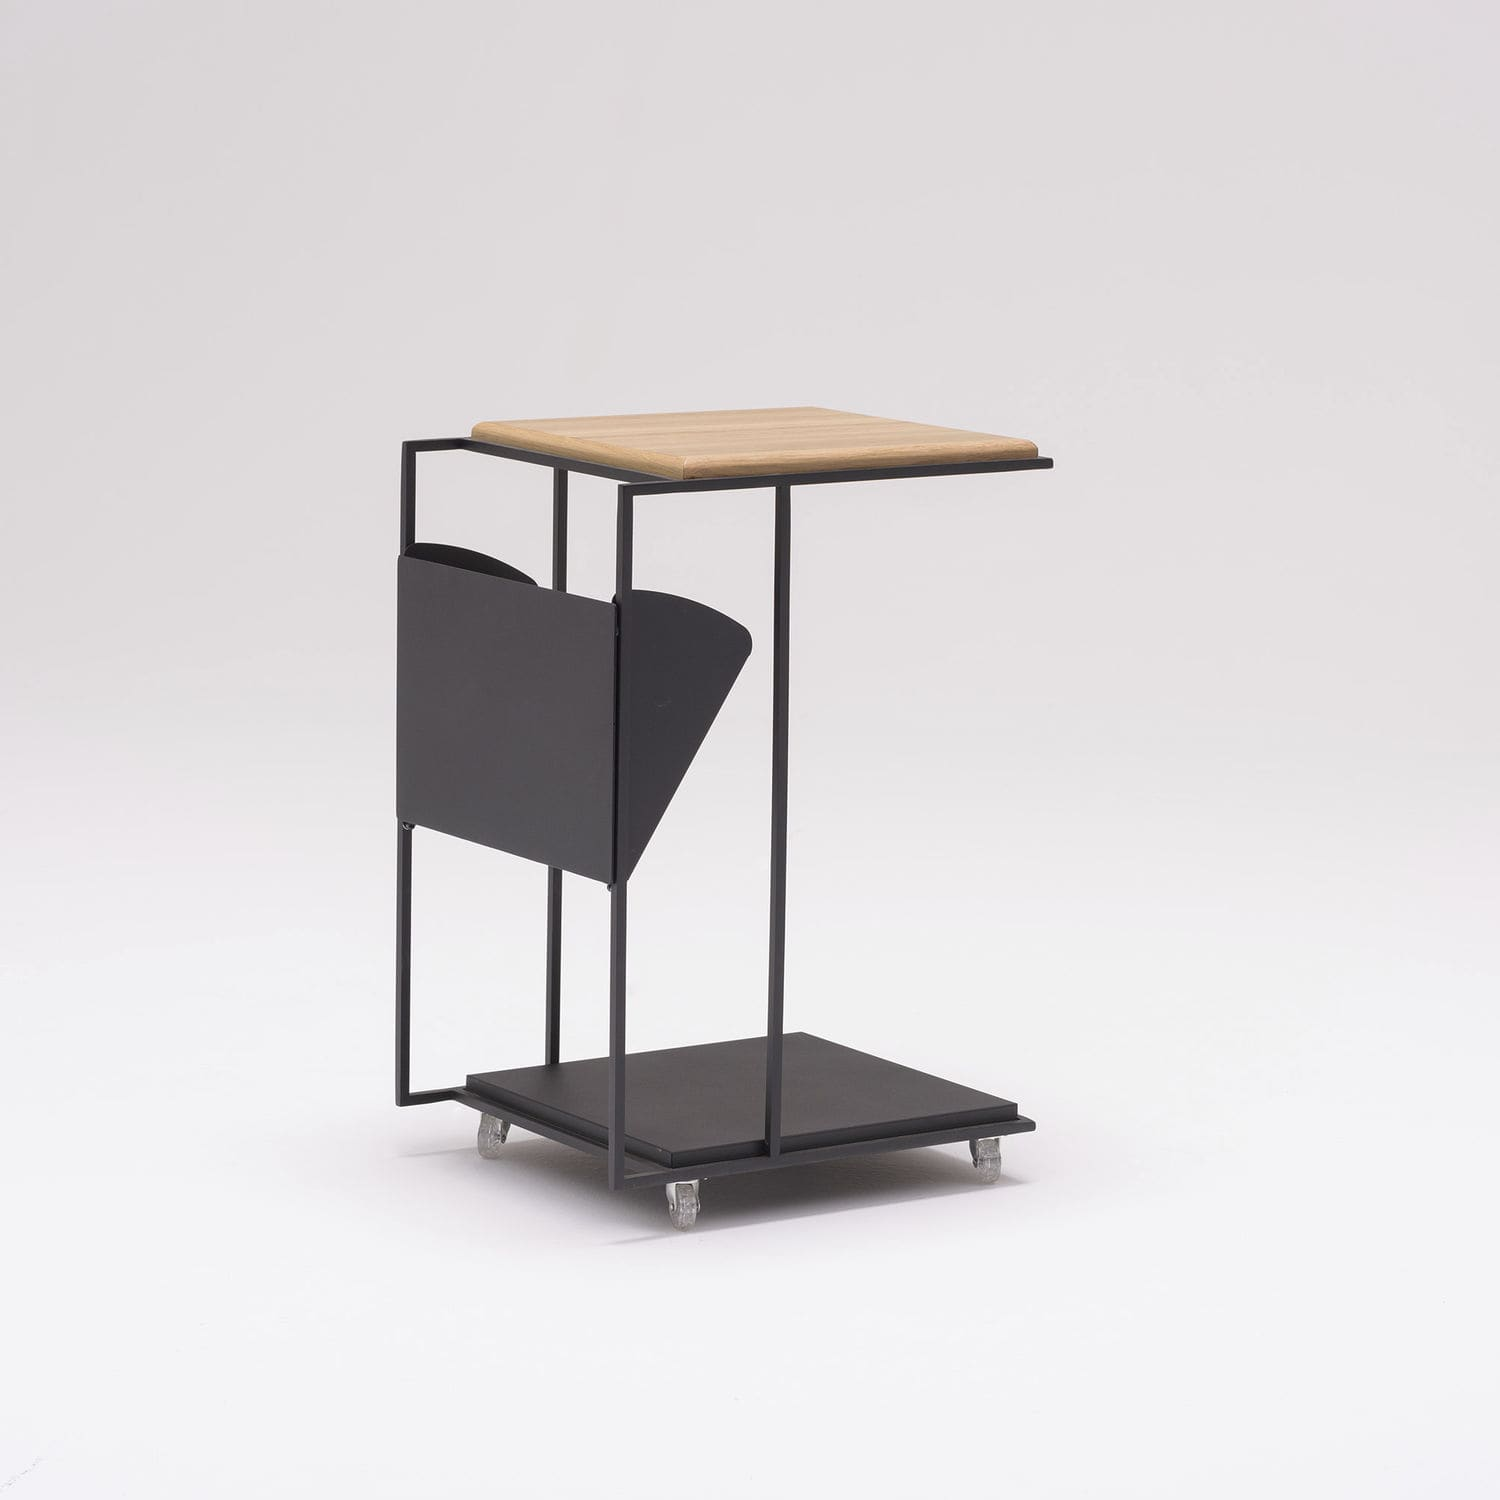 Contemporary Side Table Wooden Metal Rectangular Frame C By Ece Yalım Design Studio